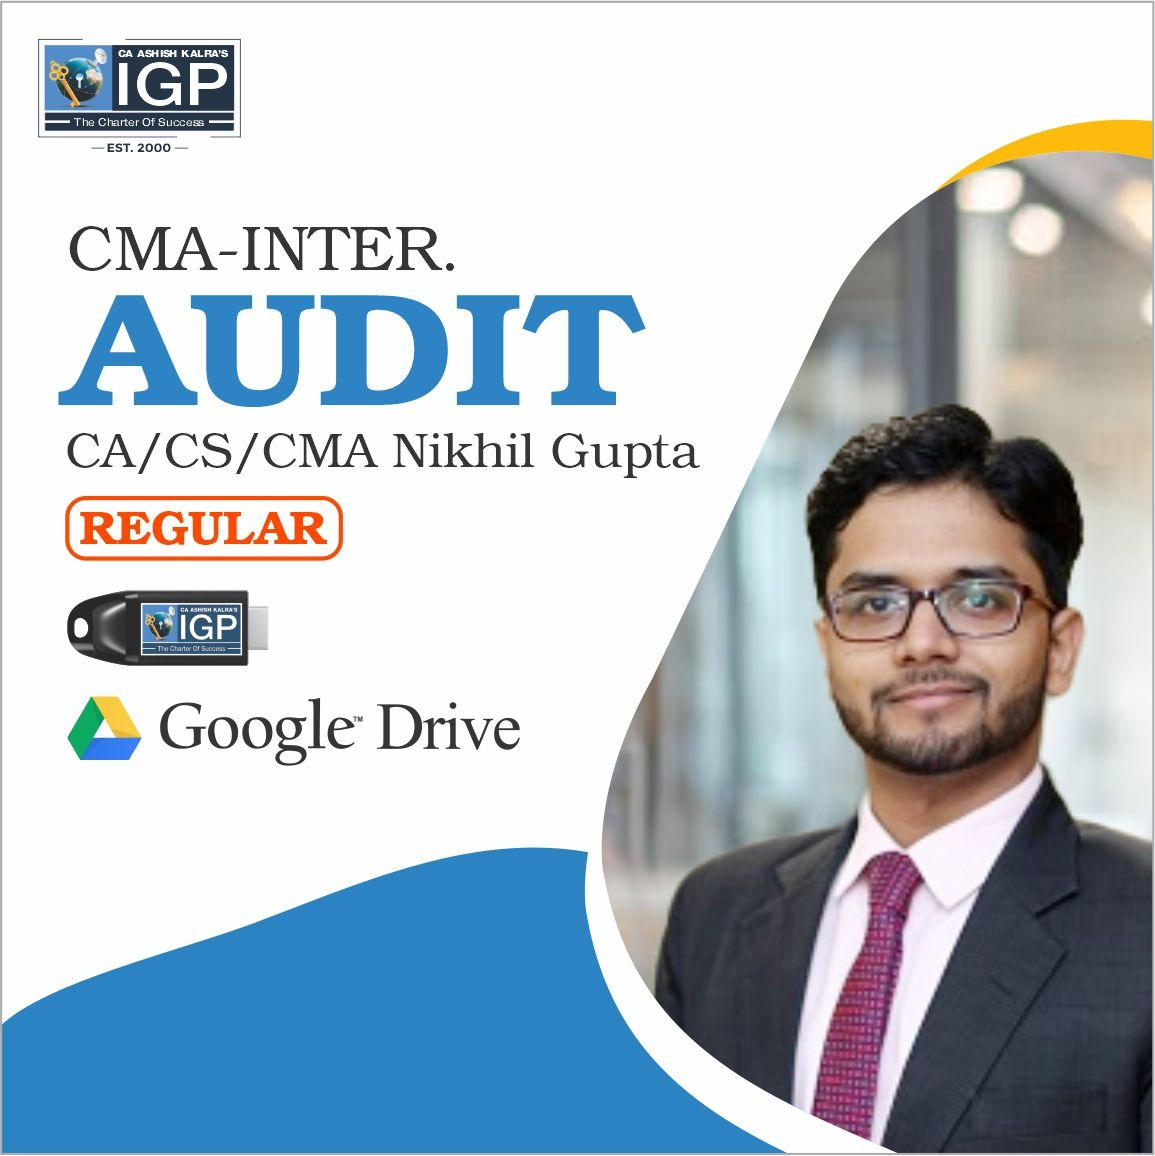 CMA-Audit-CA/CS/CMA NIKKHIL GUPTA